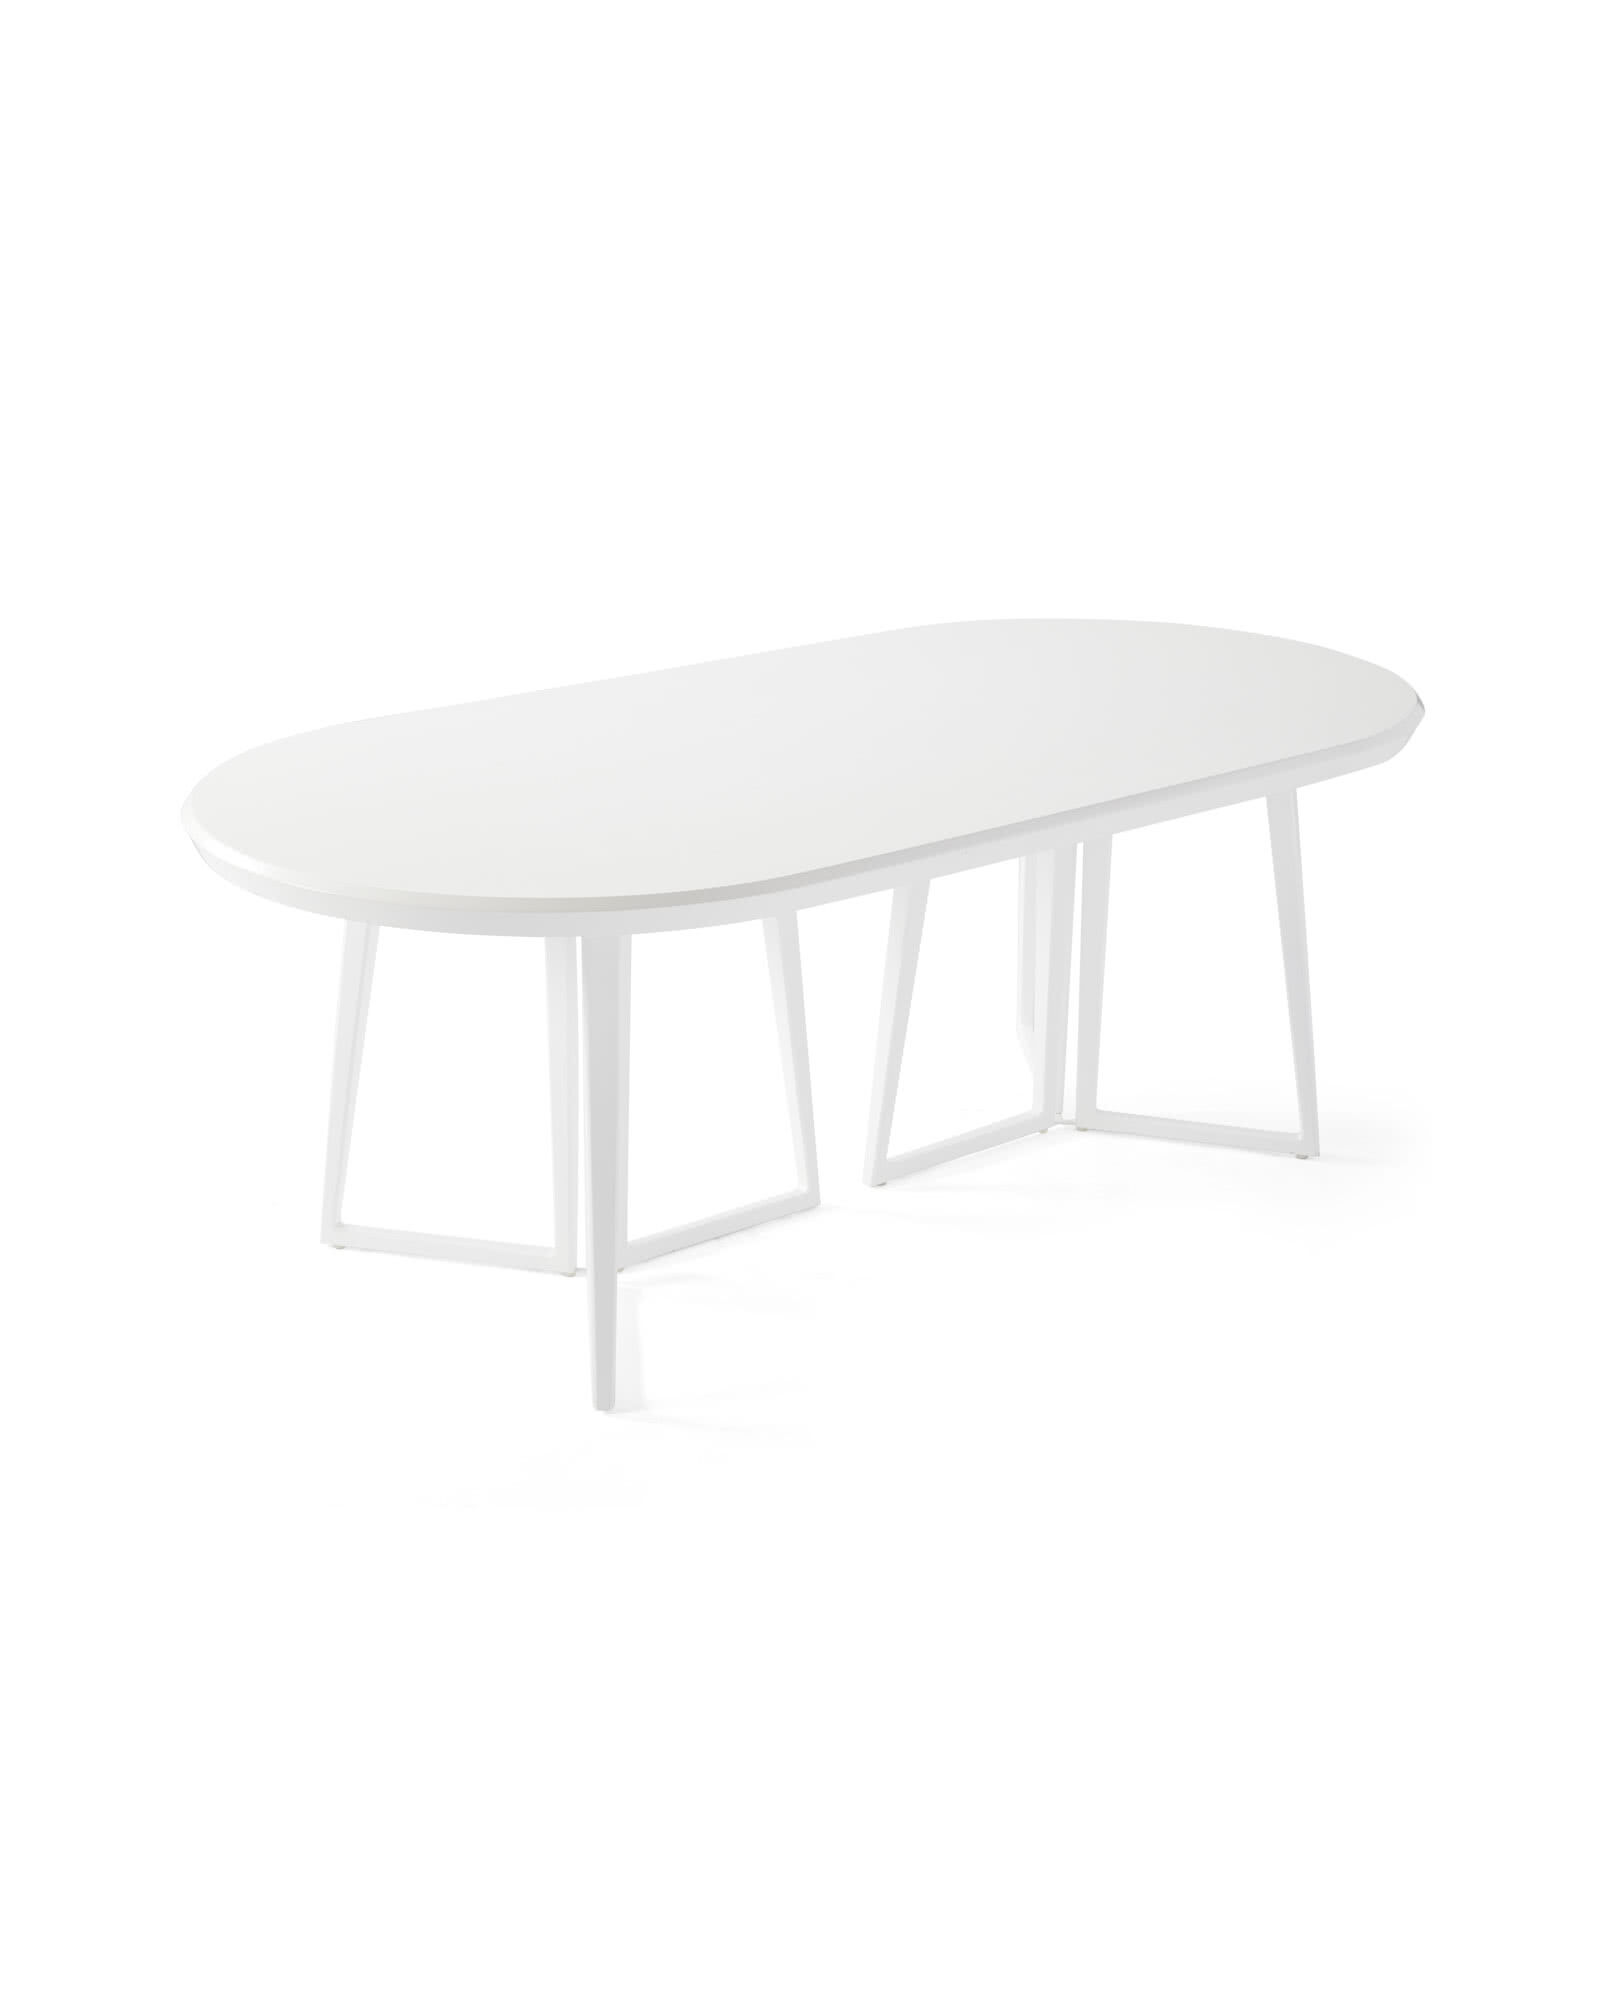 Downing Oval Dining Table,